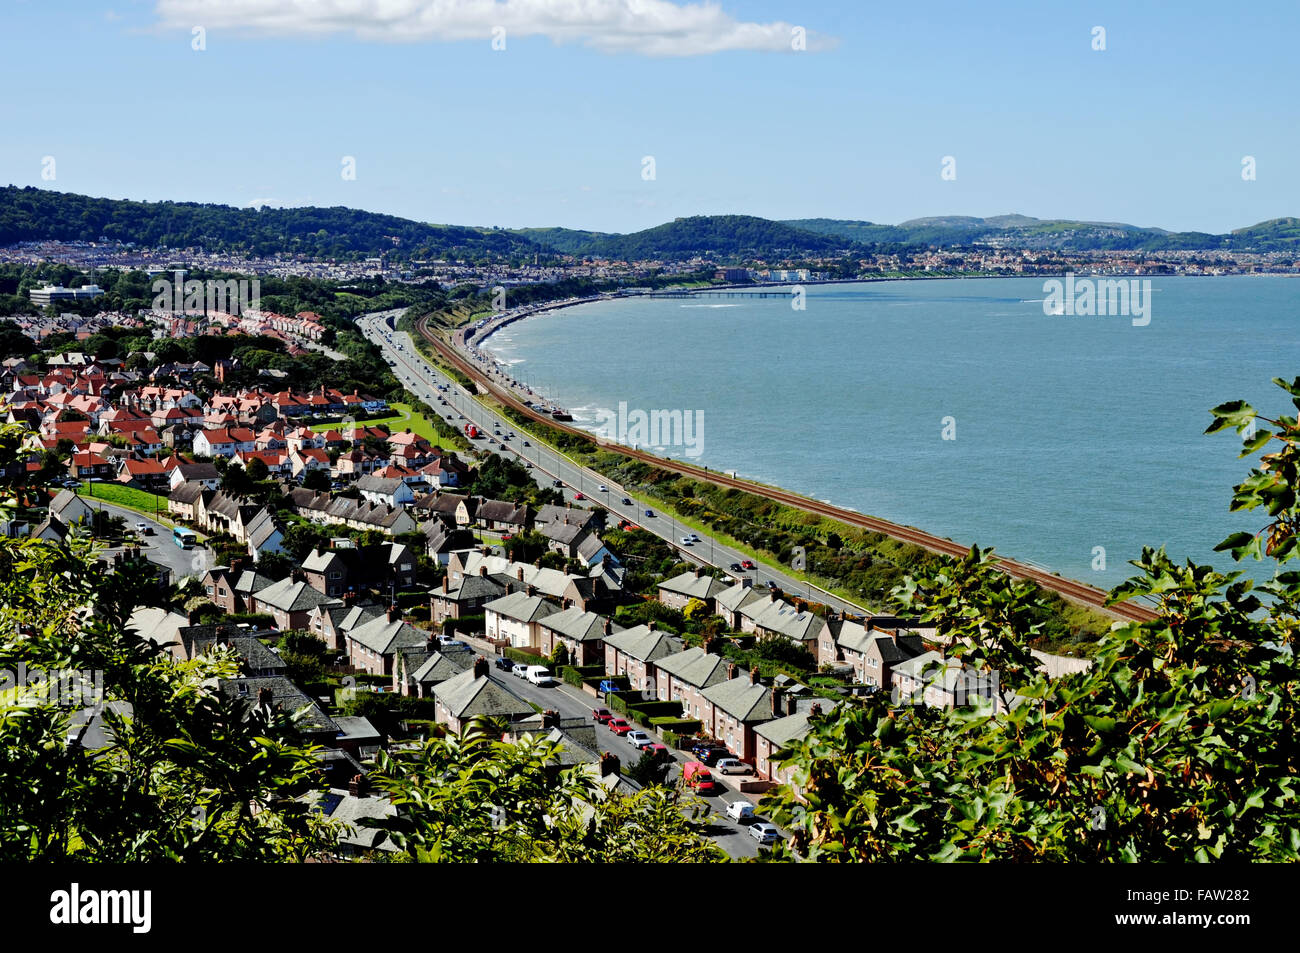 View of Colwyn Bay, North Wales, U.K.  from an elevated viewpoint, - Stock Image